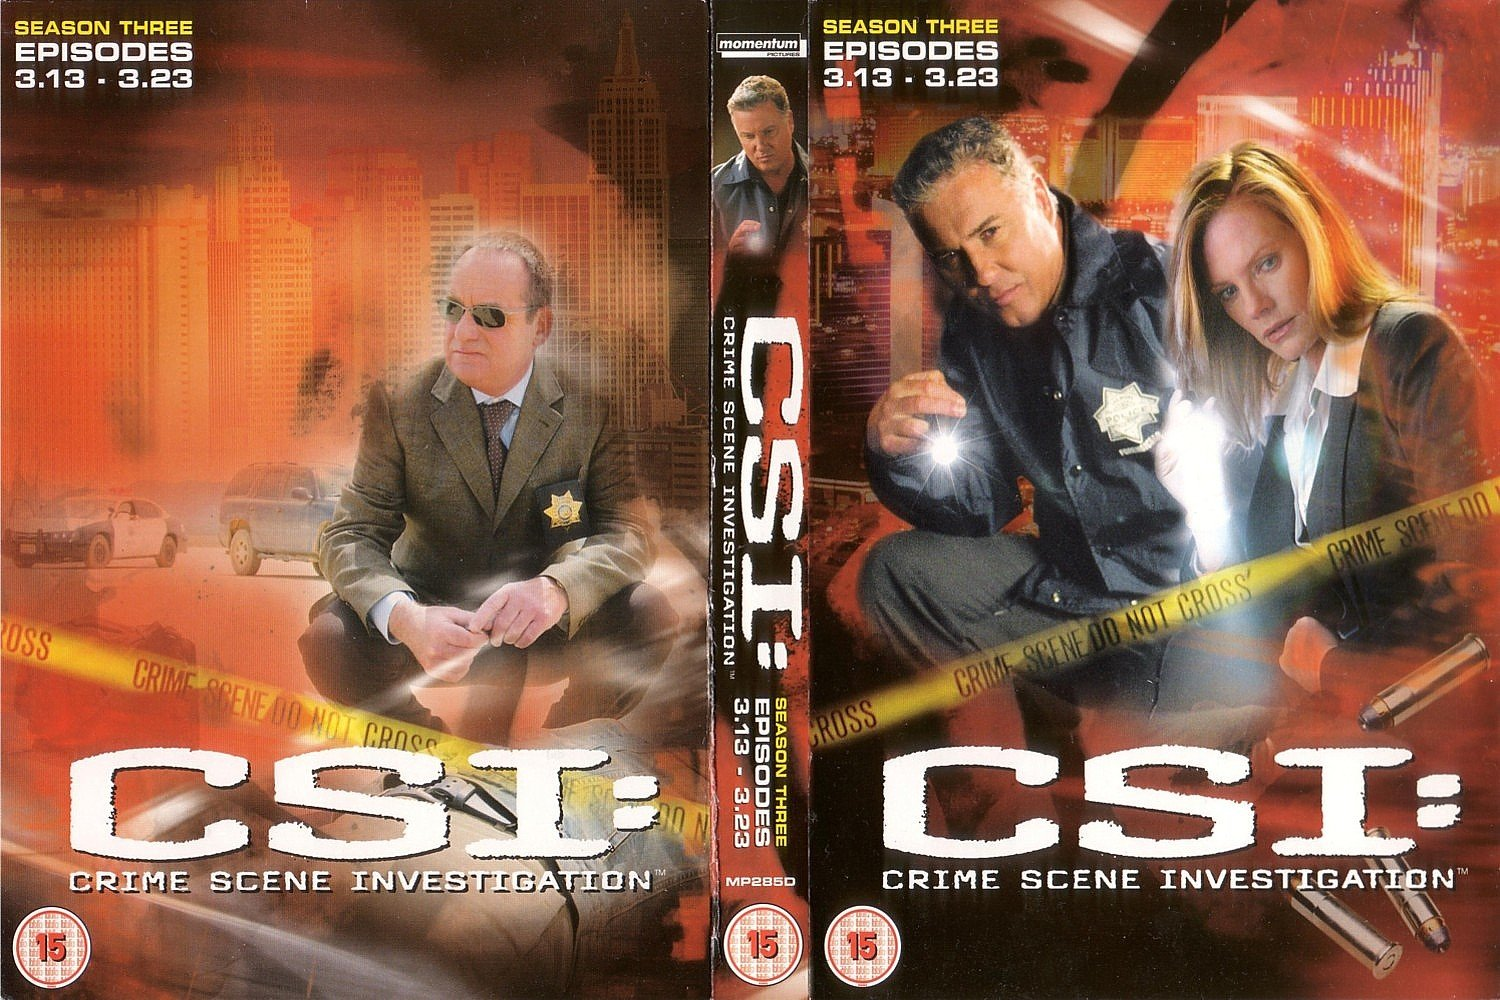 C_S_I_Season_3_Episodes_13-23-[cdcovers_cc]-front.jpg